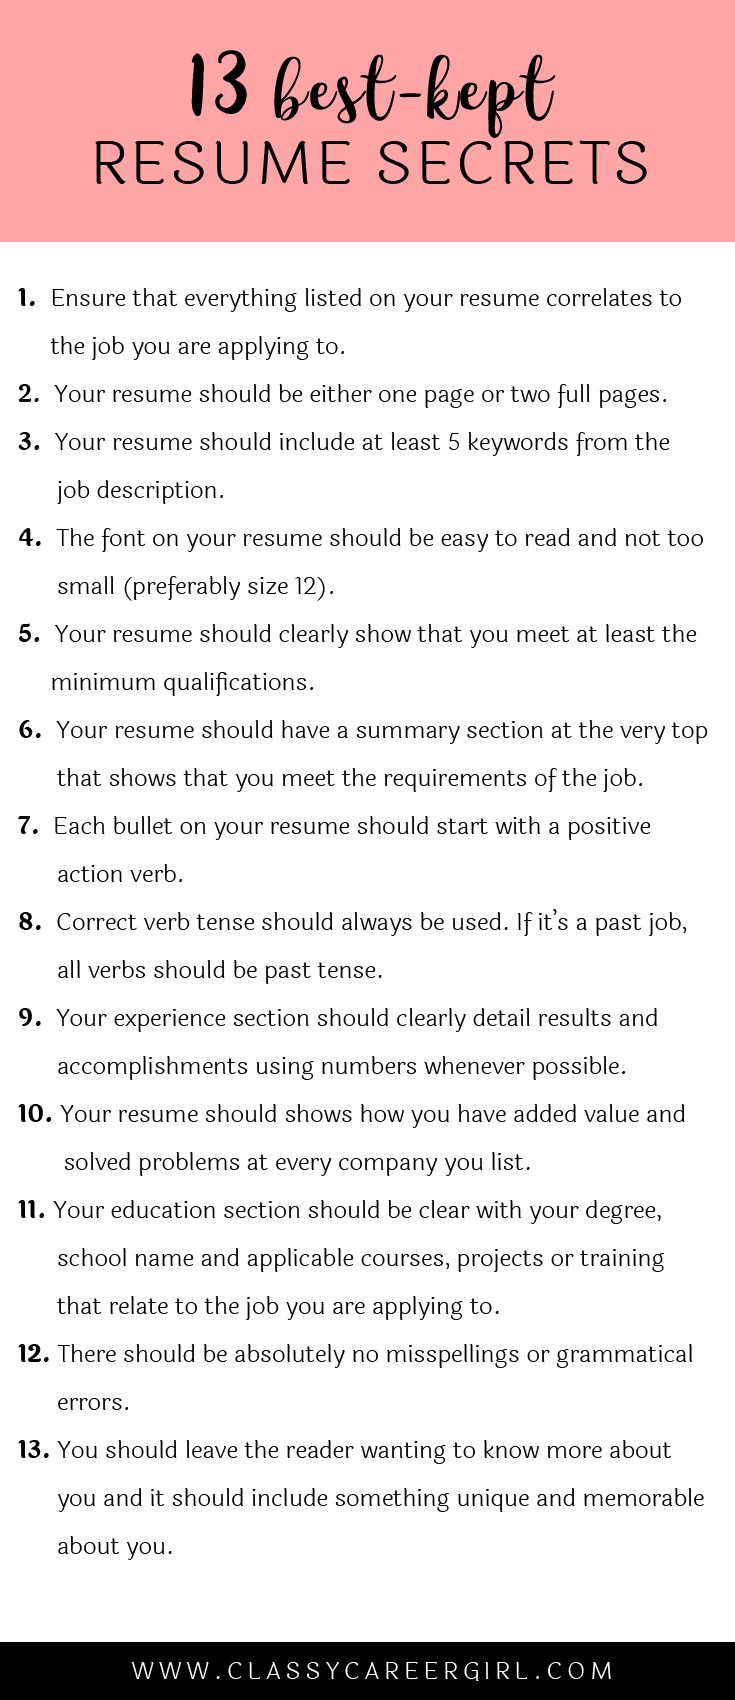 Opposenewapstandardsus  Prepossessing  Ideas About Resume On Pinterest  Cv Format Resume Cv And  With Goodlooking Some Hiring Managers Will Toss Your Resume Out If You Dont Know These  With Captivating Babysitting Resume Template Also Create Resume Templates In Addition Management Consulting Resume Sample And Resume Express As Well As Sample Rn Resumes Additionally Free Printable Resume Wizard From Pinterestcom With Opposenewapstandardsus  Goodlooking  Ideas About Resume On Pinterest  Cv Format Resume Cv And  With Captivating Some Hiring Managers Will Toss Your Resume Out If You Dont Know These  And Prepossessing Babysitting Resume Template Also Create Resume Templates In Addition Management Consulting Resume Sample From Pinterestcom